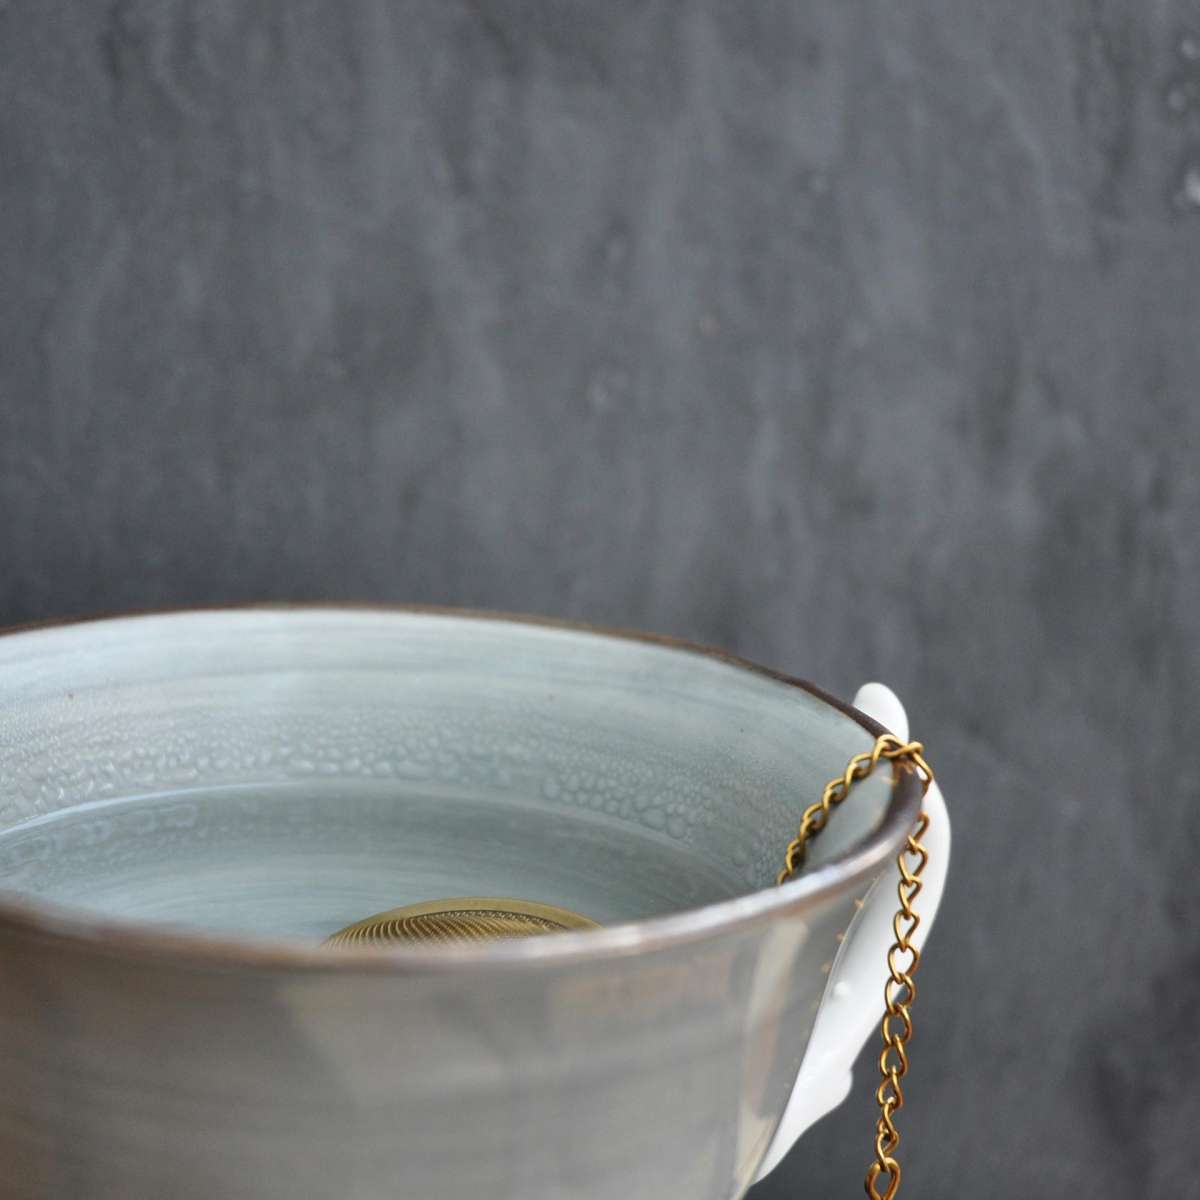 Tea strainer in a cup